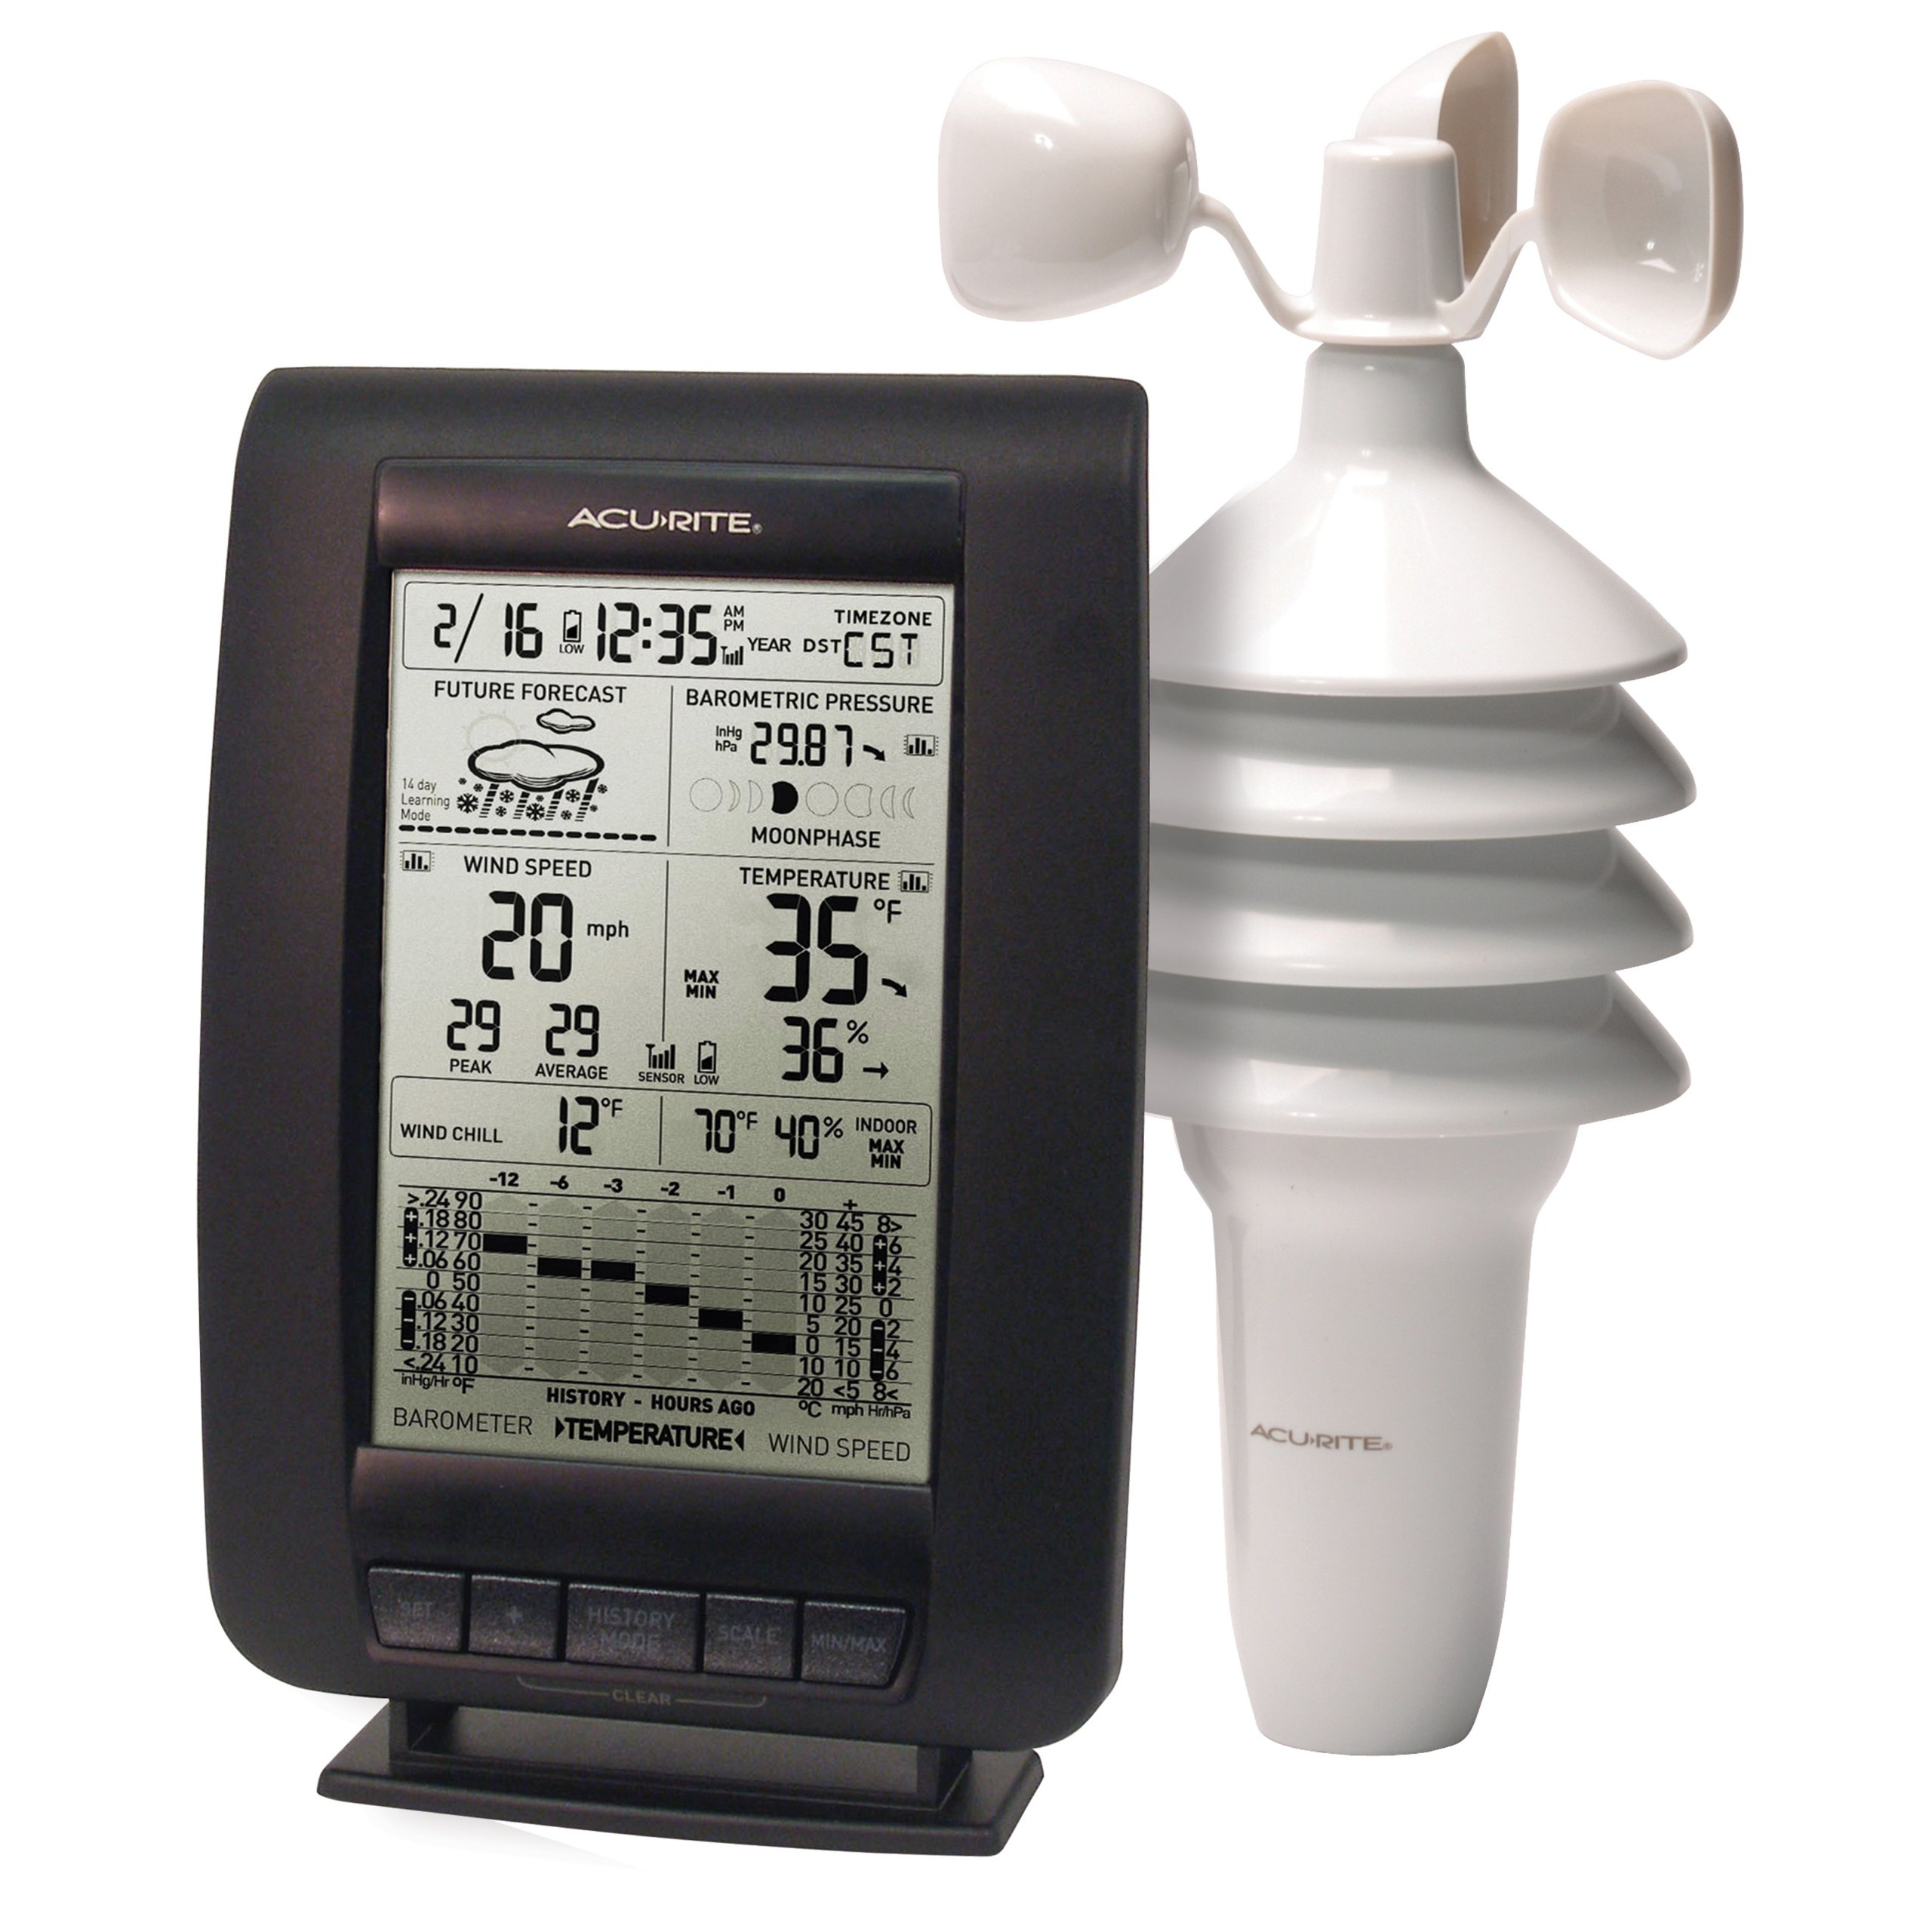 acurite weather station manual 02032c